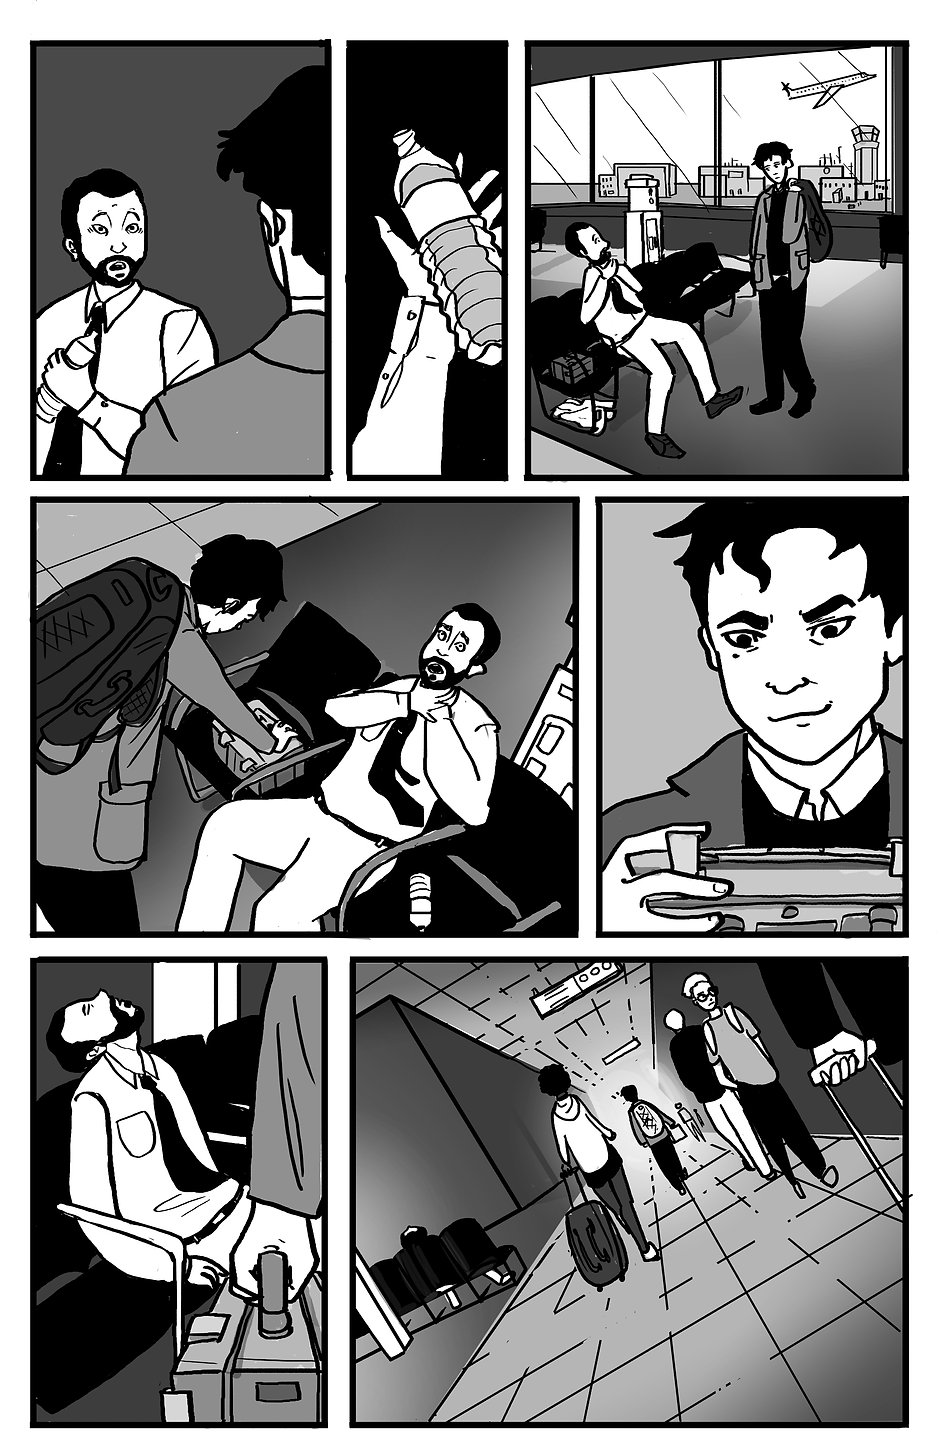 Gaskins_Amanda_Project5_Inks_Page4.jpg